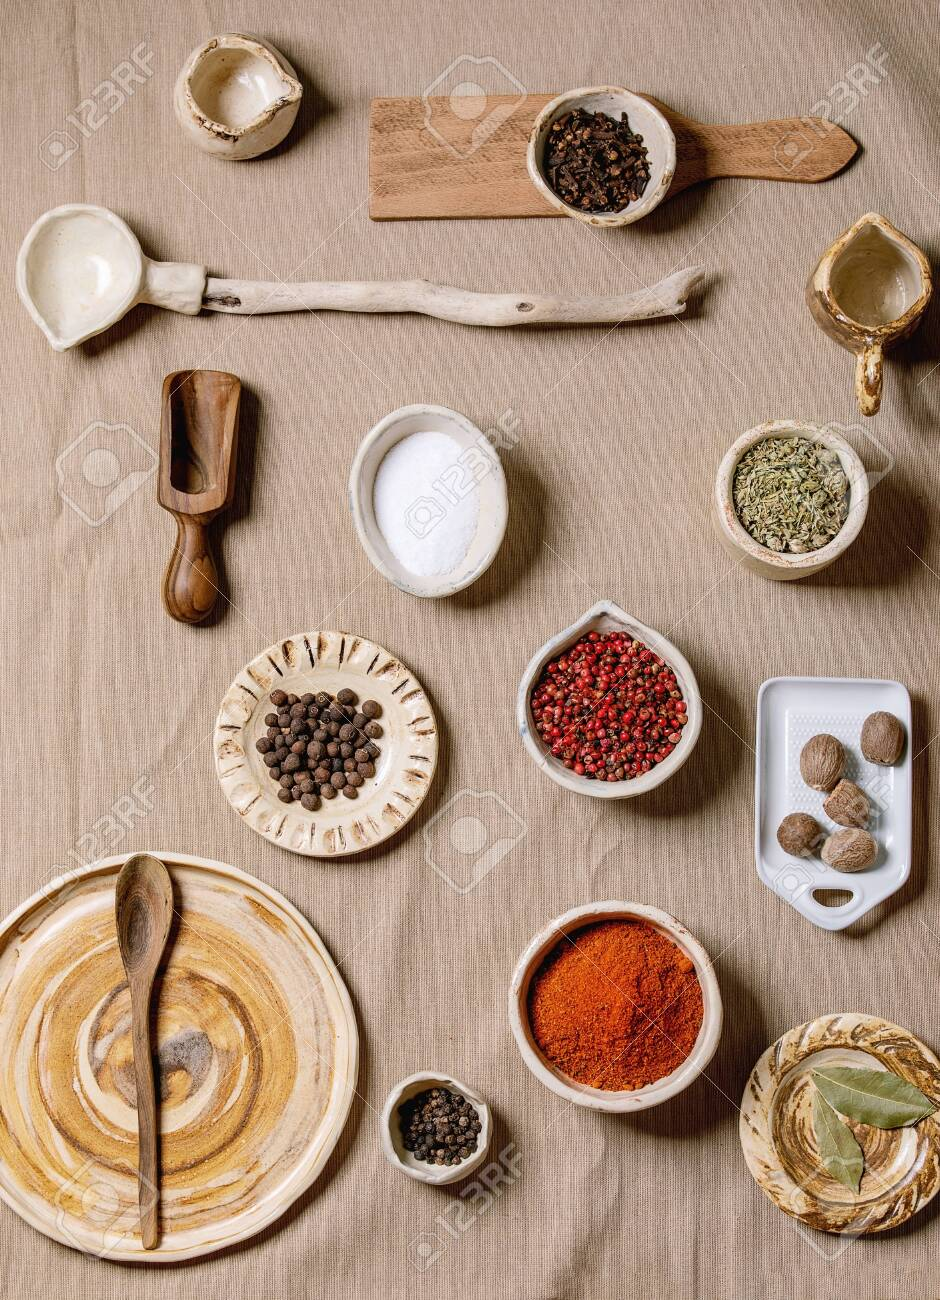 Variety of different handmade wooden and ceramic dishes, bowls and cutlery with seasonings and spices over grey linen cloth as background. Flat lay, space. Kitchen cooking concept - 136992080